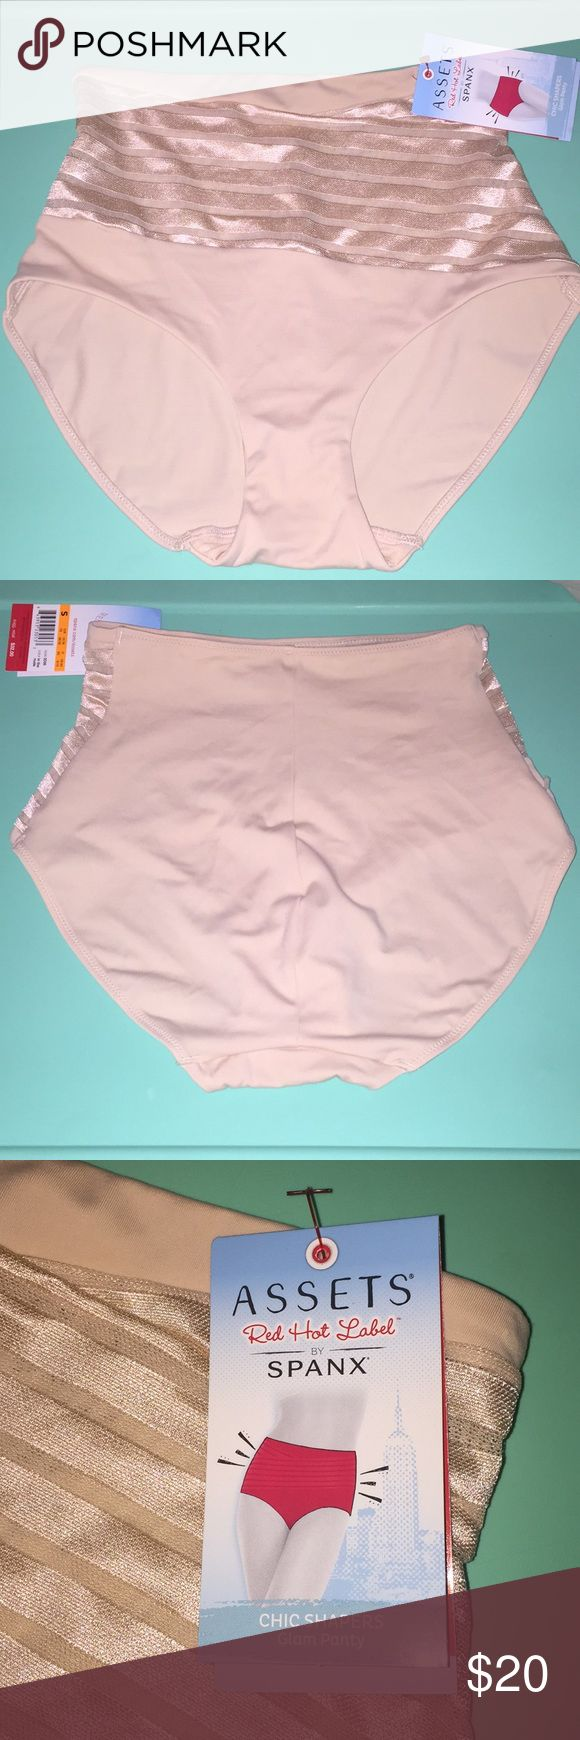 NWT Assets by Spanx chic shapers glam panty New with tags. Shaper panties. Assets by Spanx brand. Original cost $32. Assets By Spanx Intimates & Sleepwear Shapewear